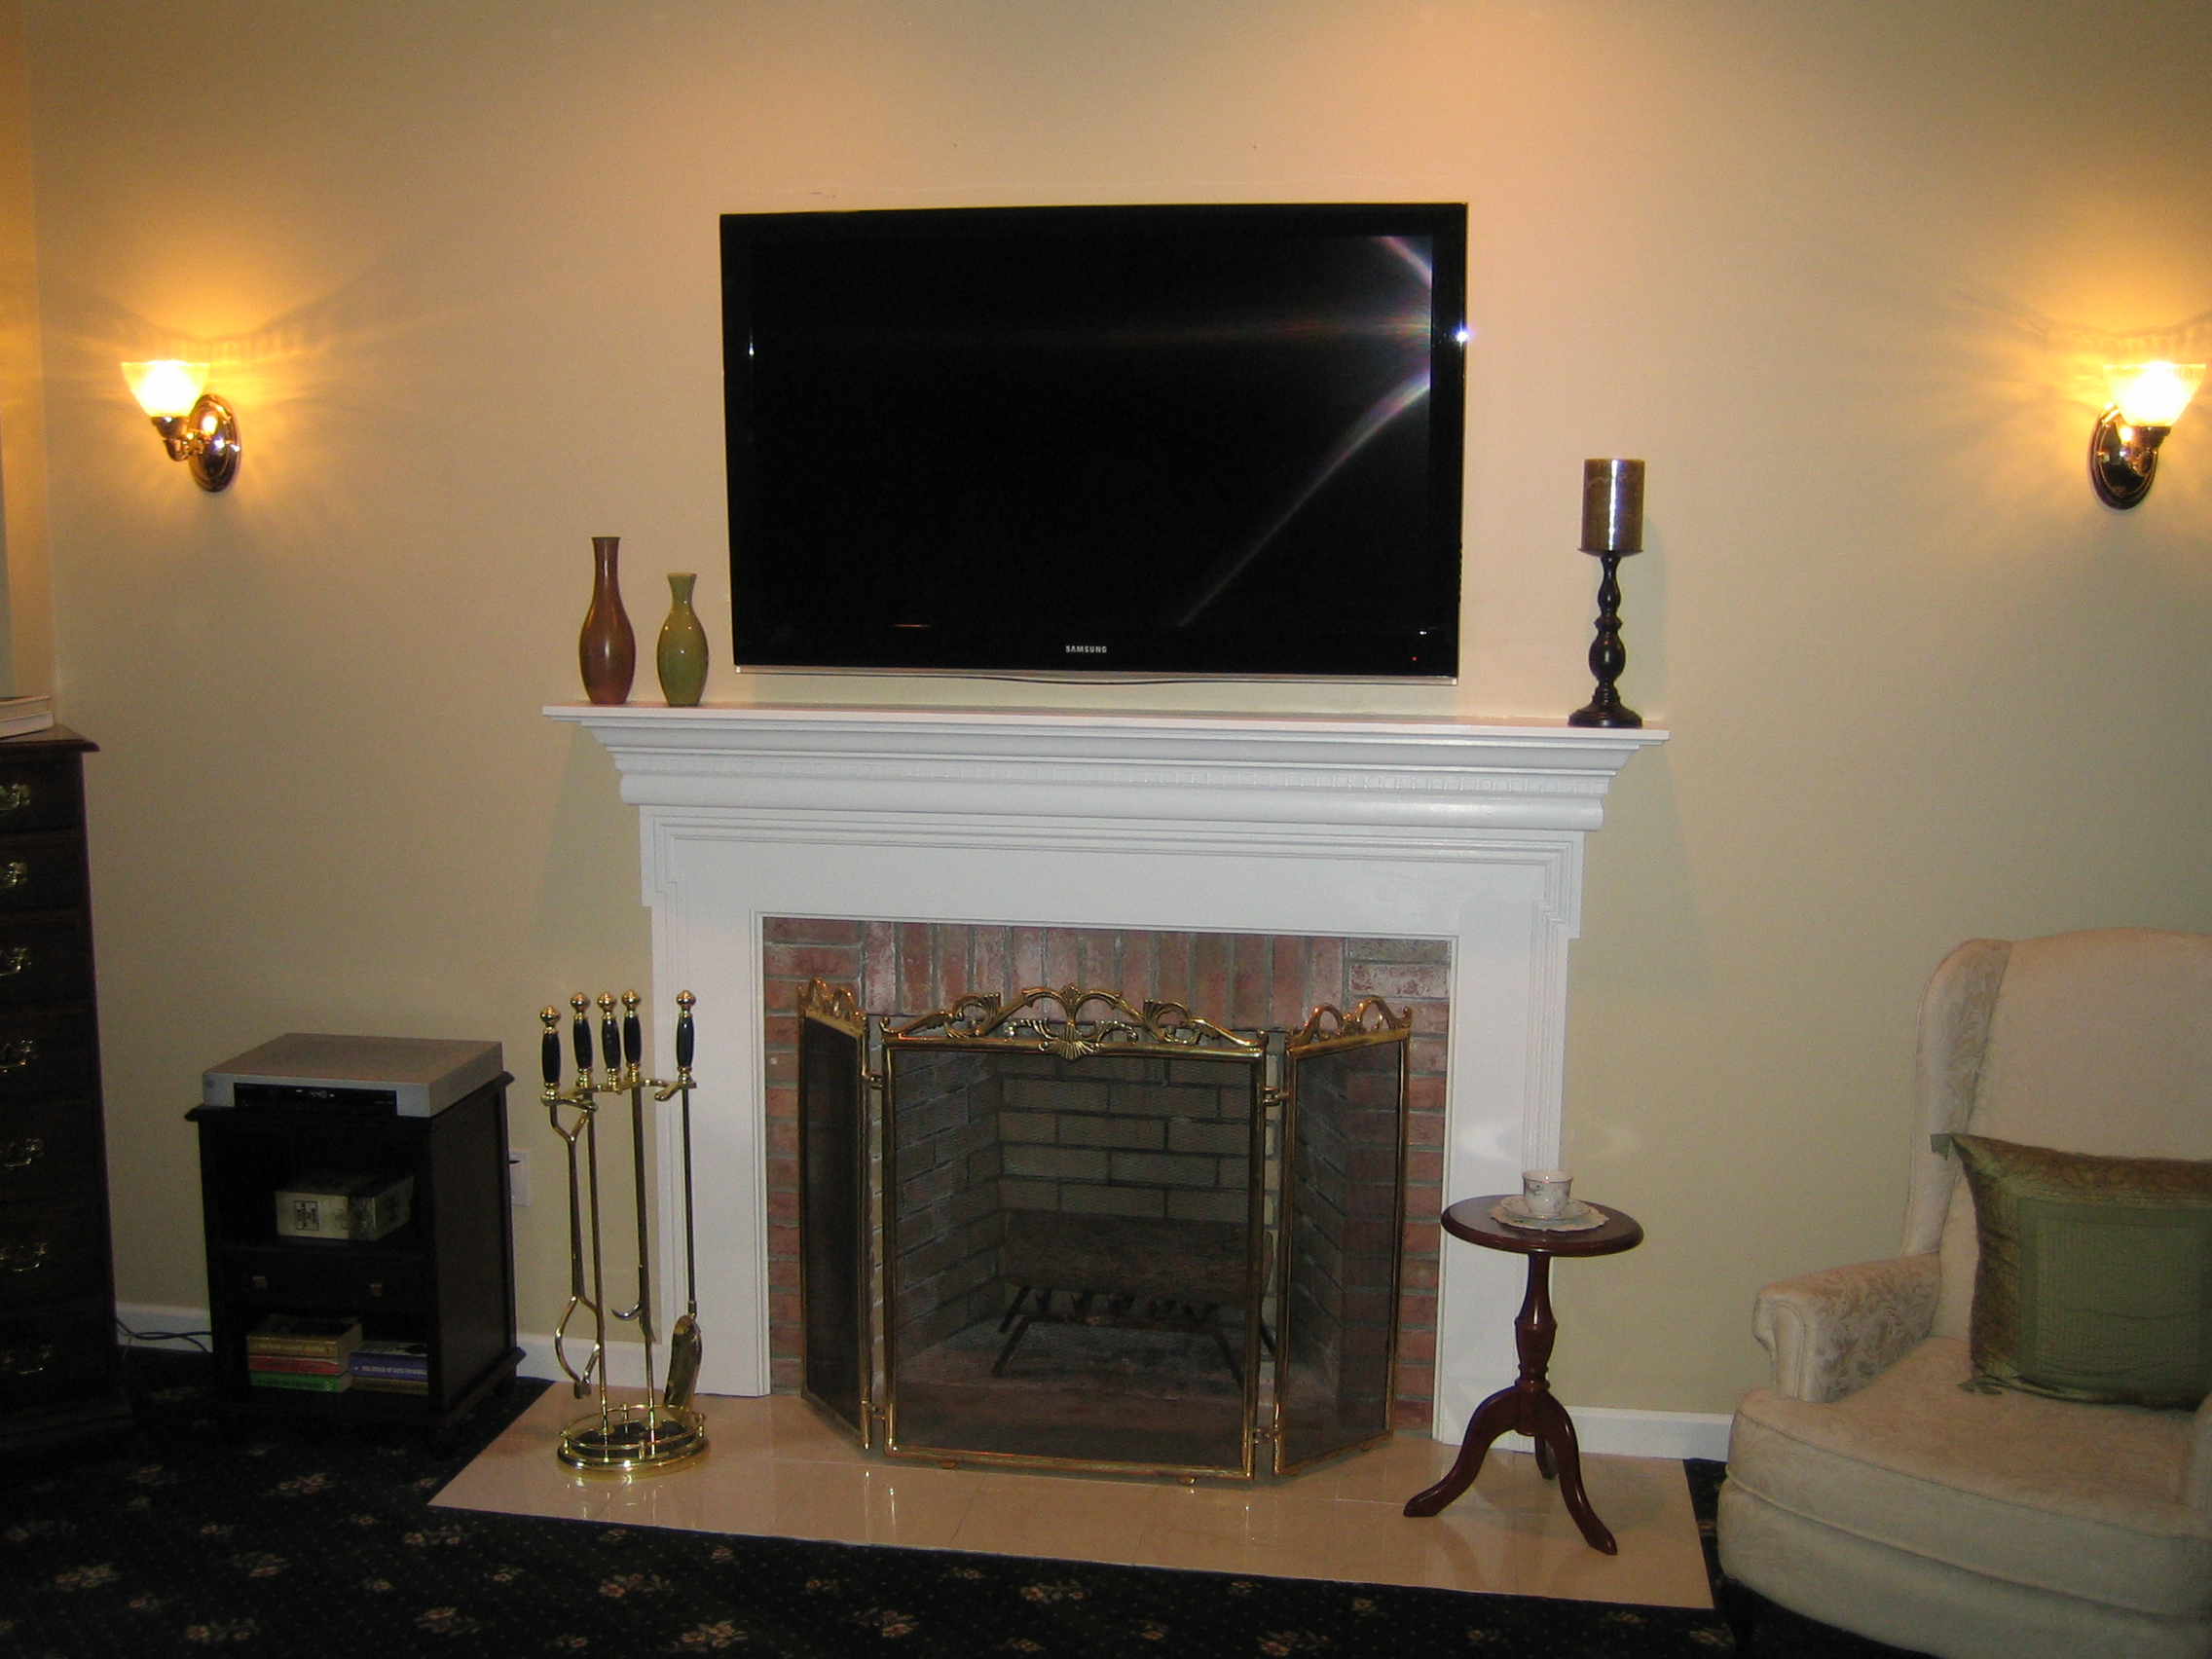 Clinton ct tv install above fireplace in wall wire for Tv over fireplace